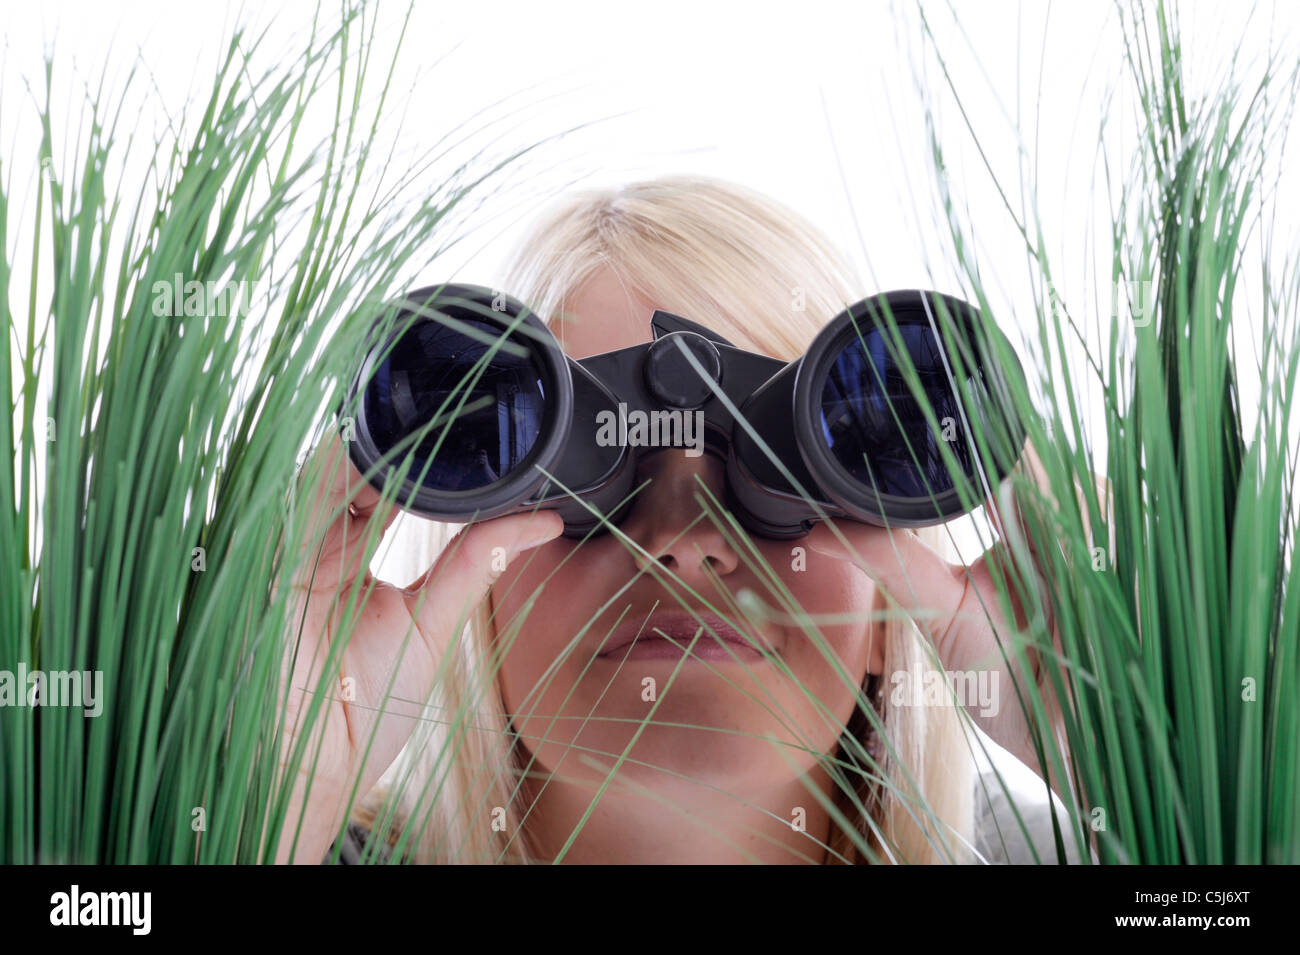 young blond woman with binoculars lying in grass - Stock Image